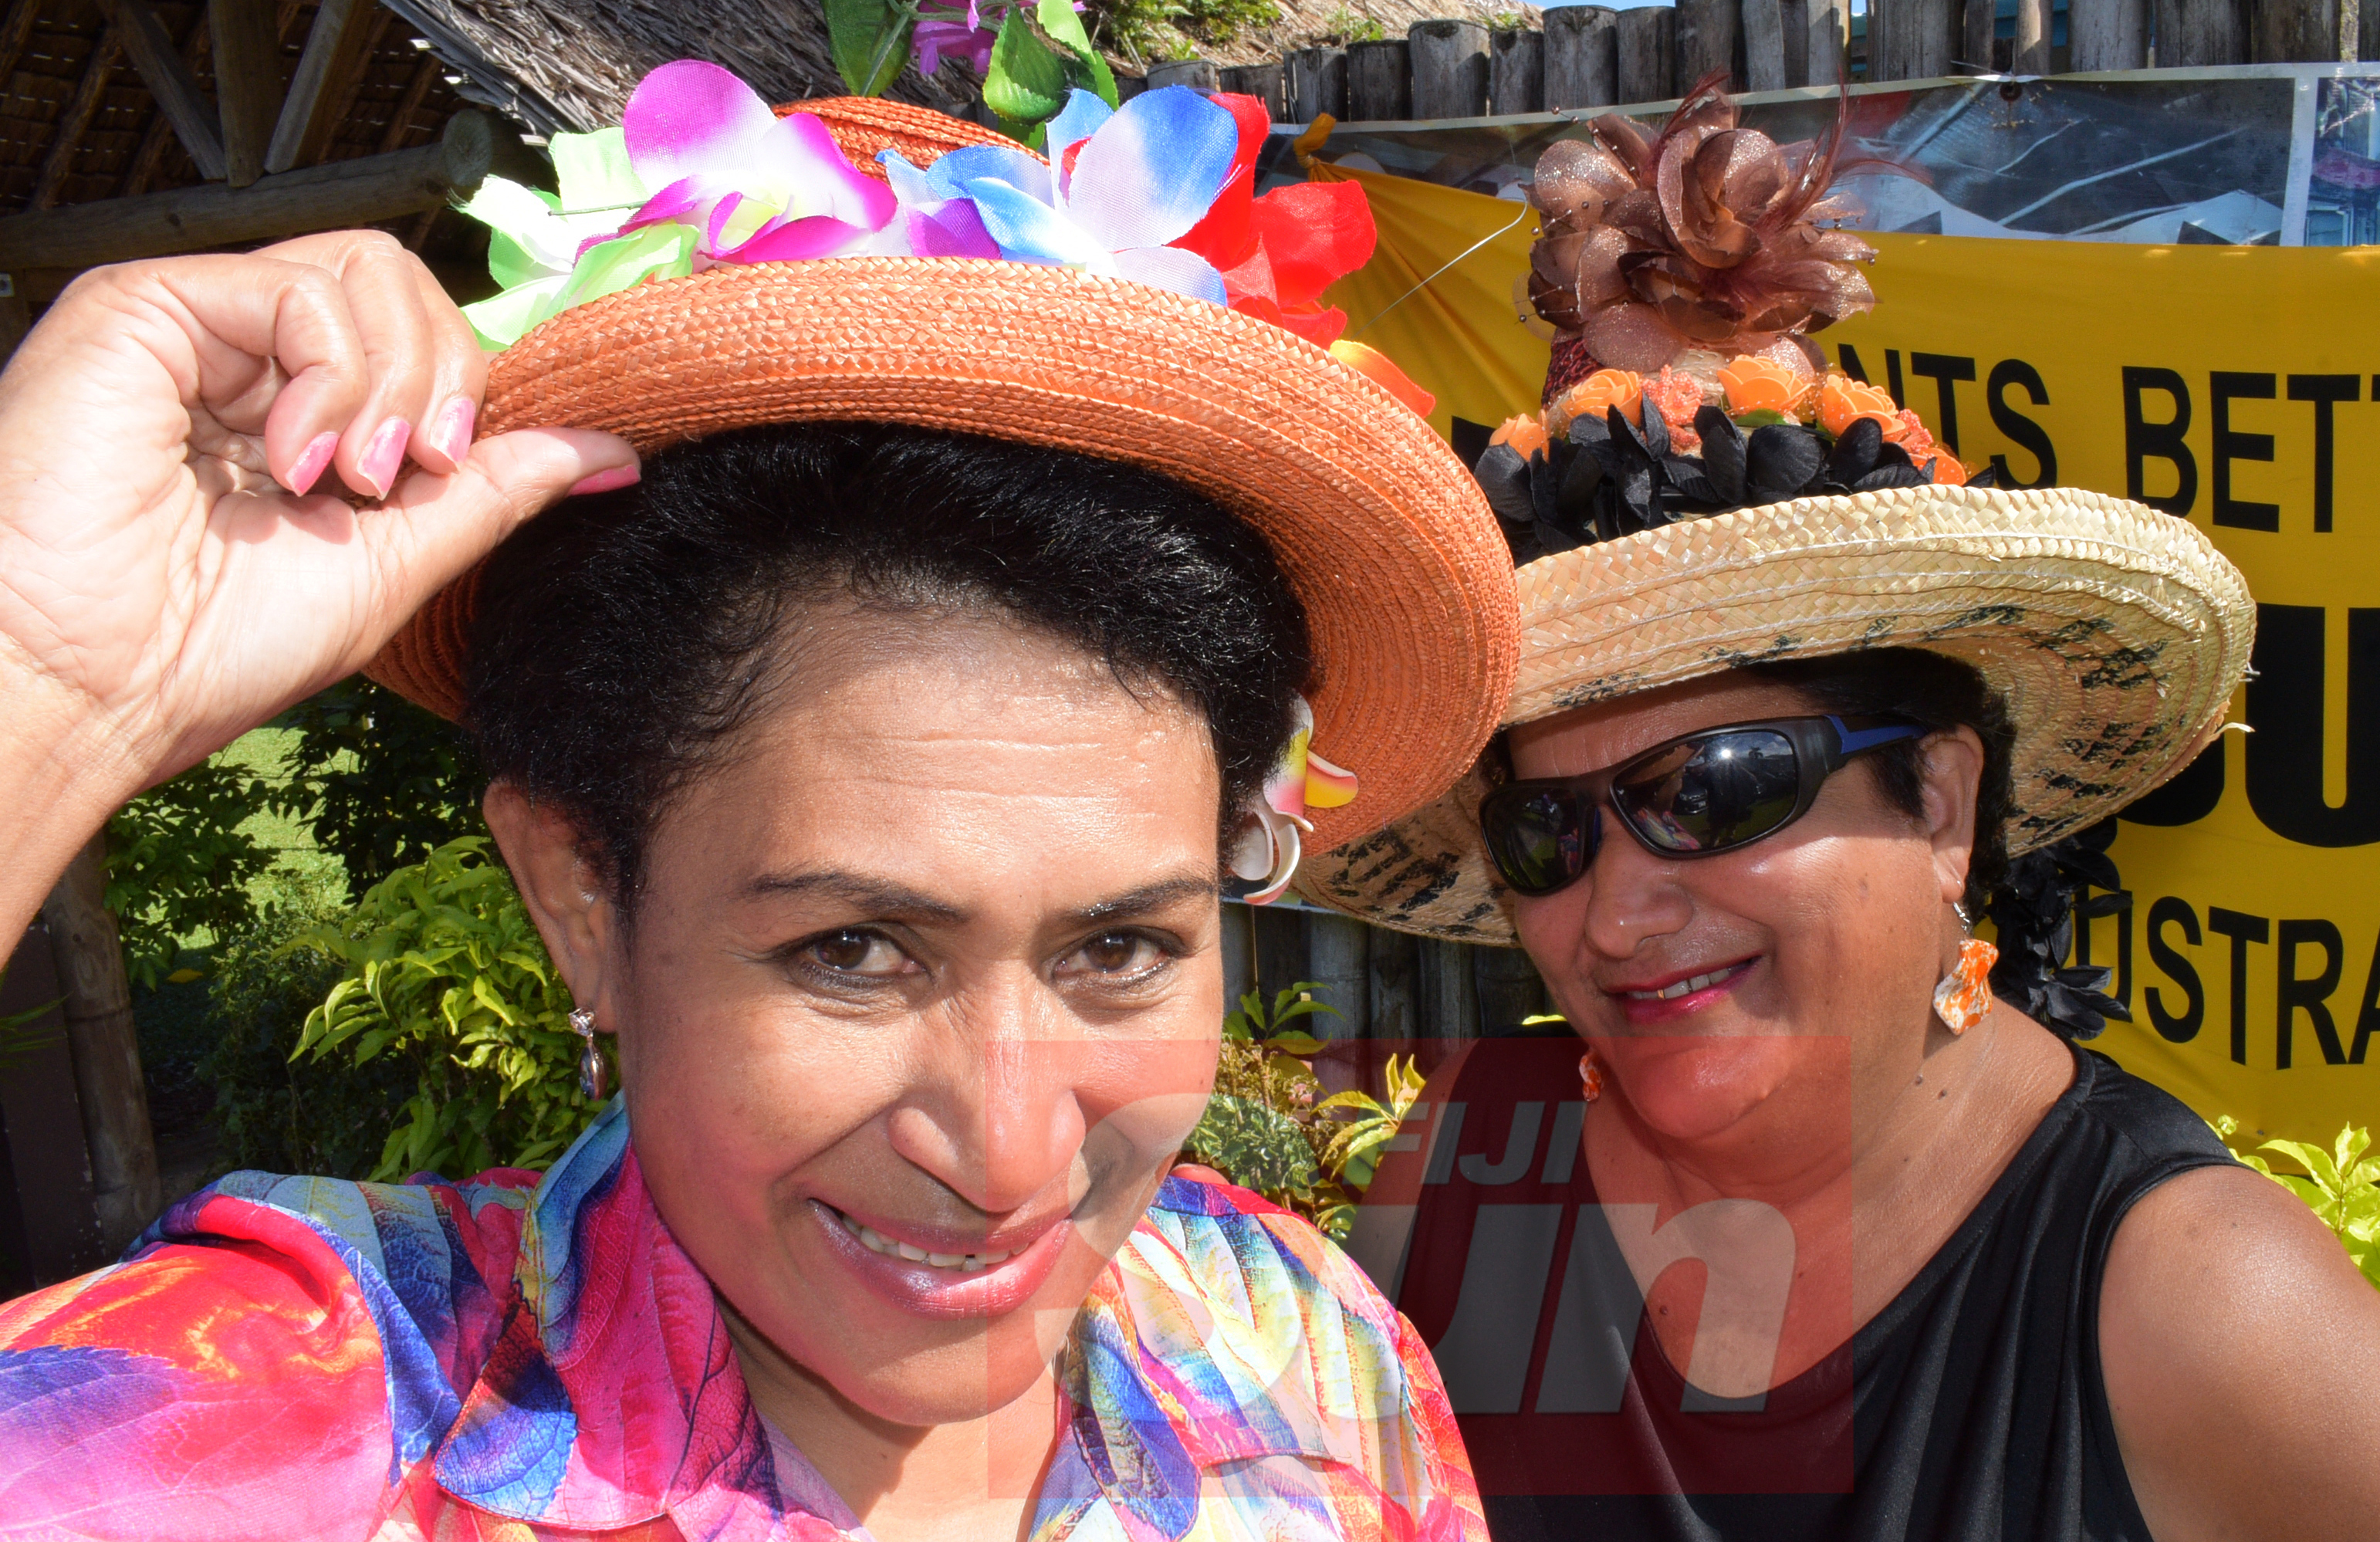 Theresa Senimilivuki (left) and Malti Dumaru with their special Melbourne cup hats at Bowling Club in Suva on November 5, 2019. Photo: Ronald Kumar.